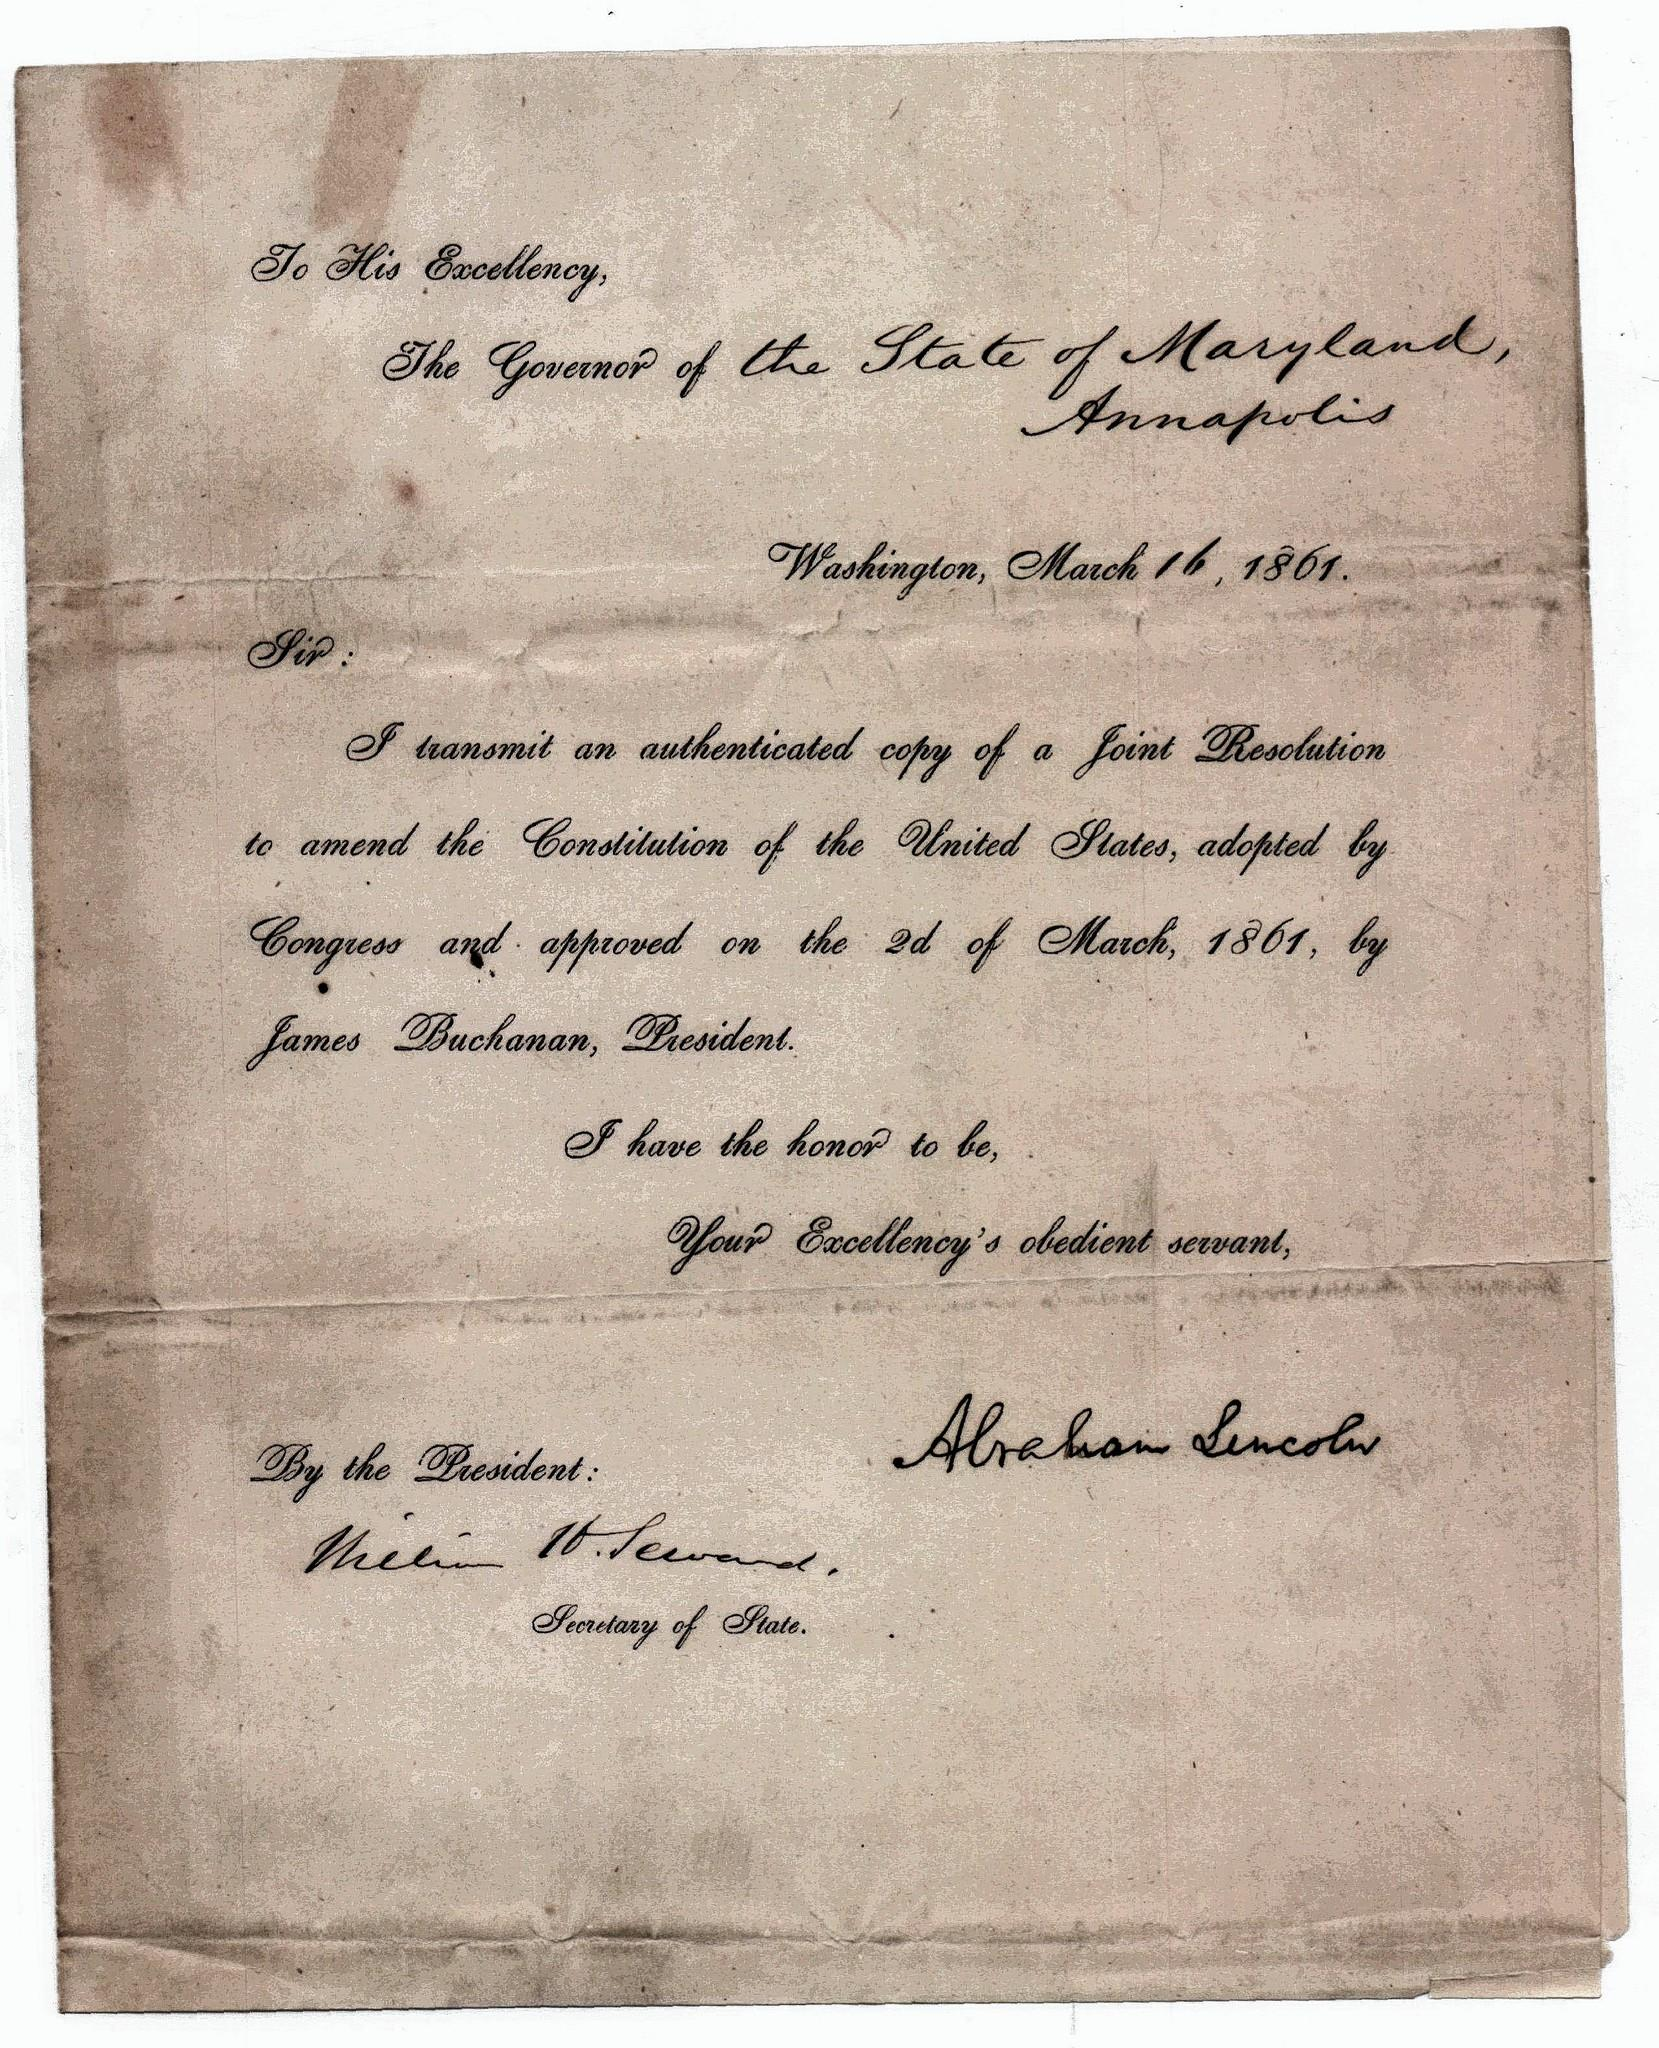 A letter from President Lincoln transmitting a proposed constitutional amendment barring Congress from prohibiting slavery.